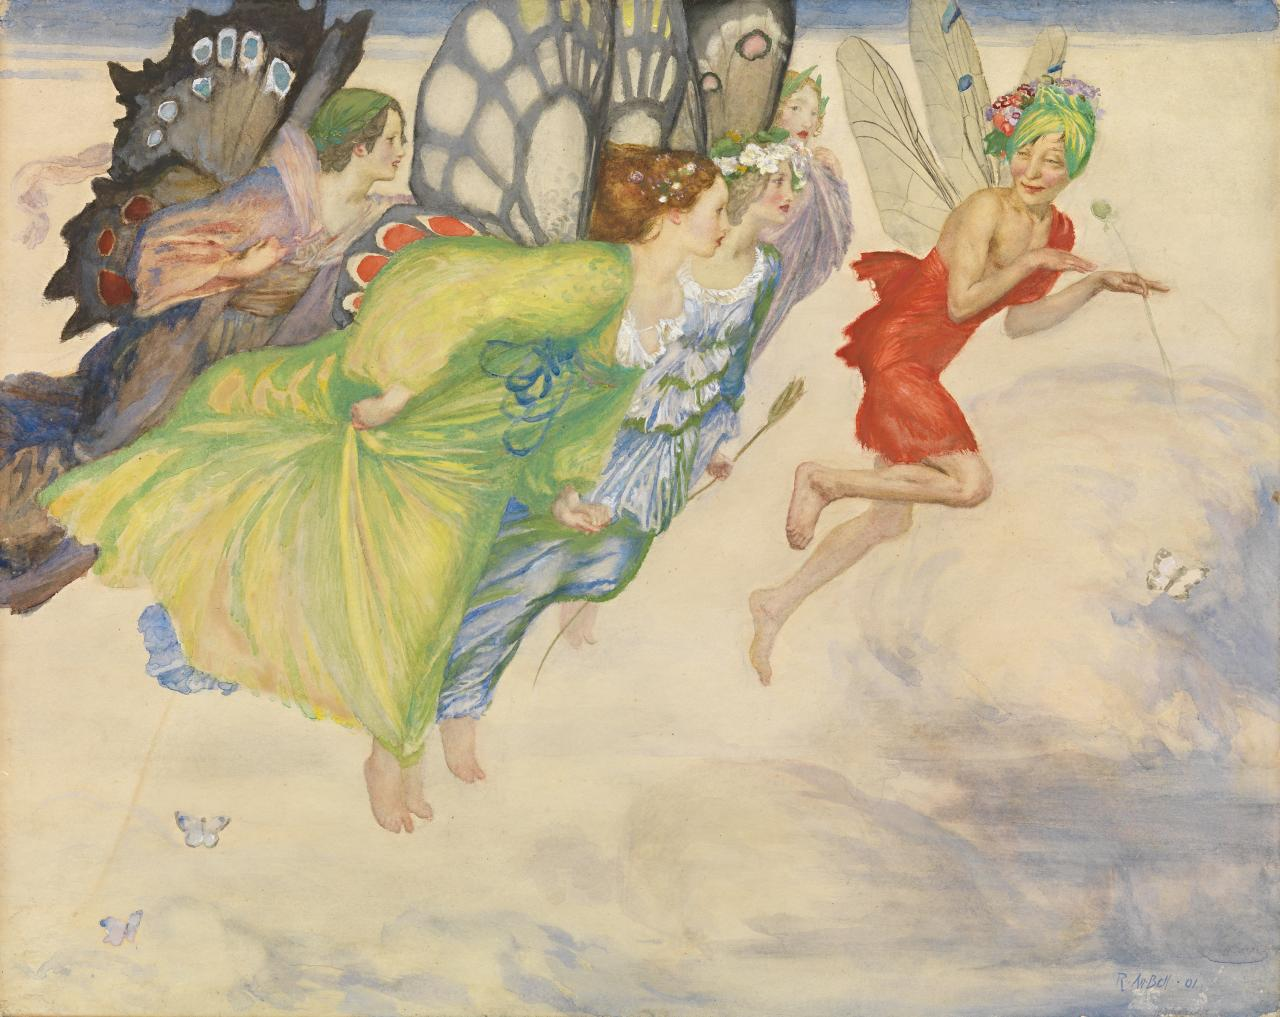 A flight of fairies